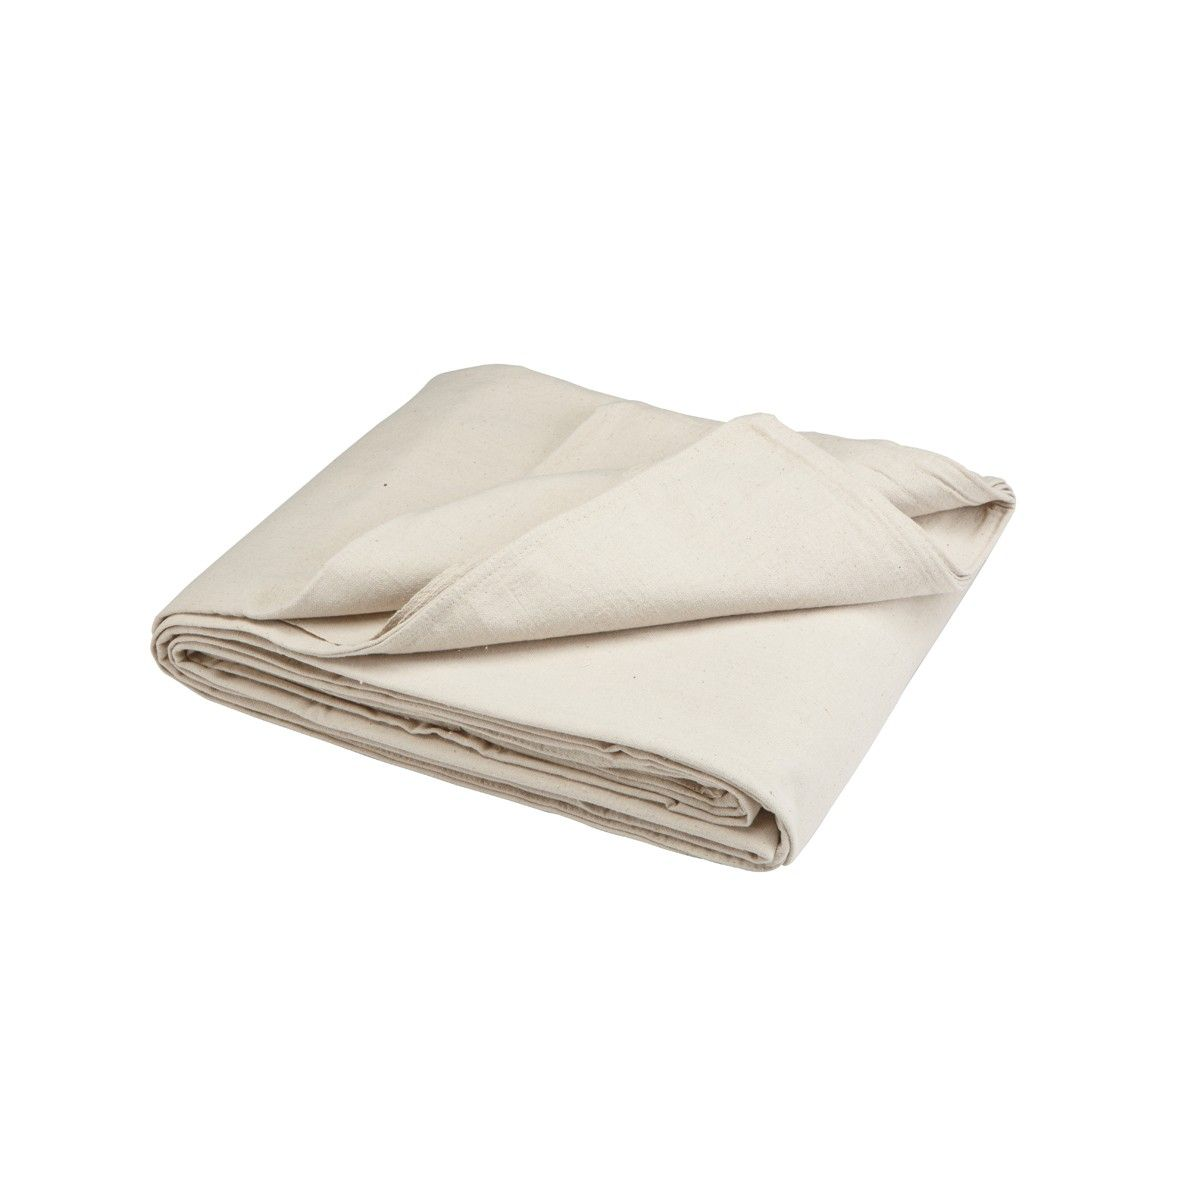 cheap canvas 15 for a 9x12 drop cloth thatu0027s the same thing as 8 yards